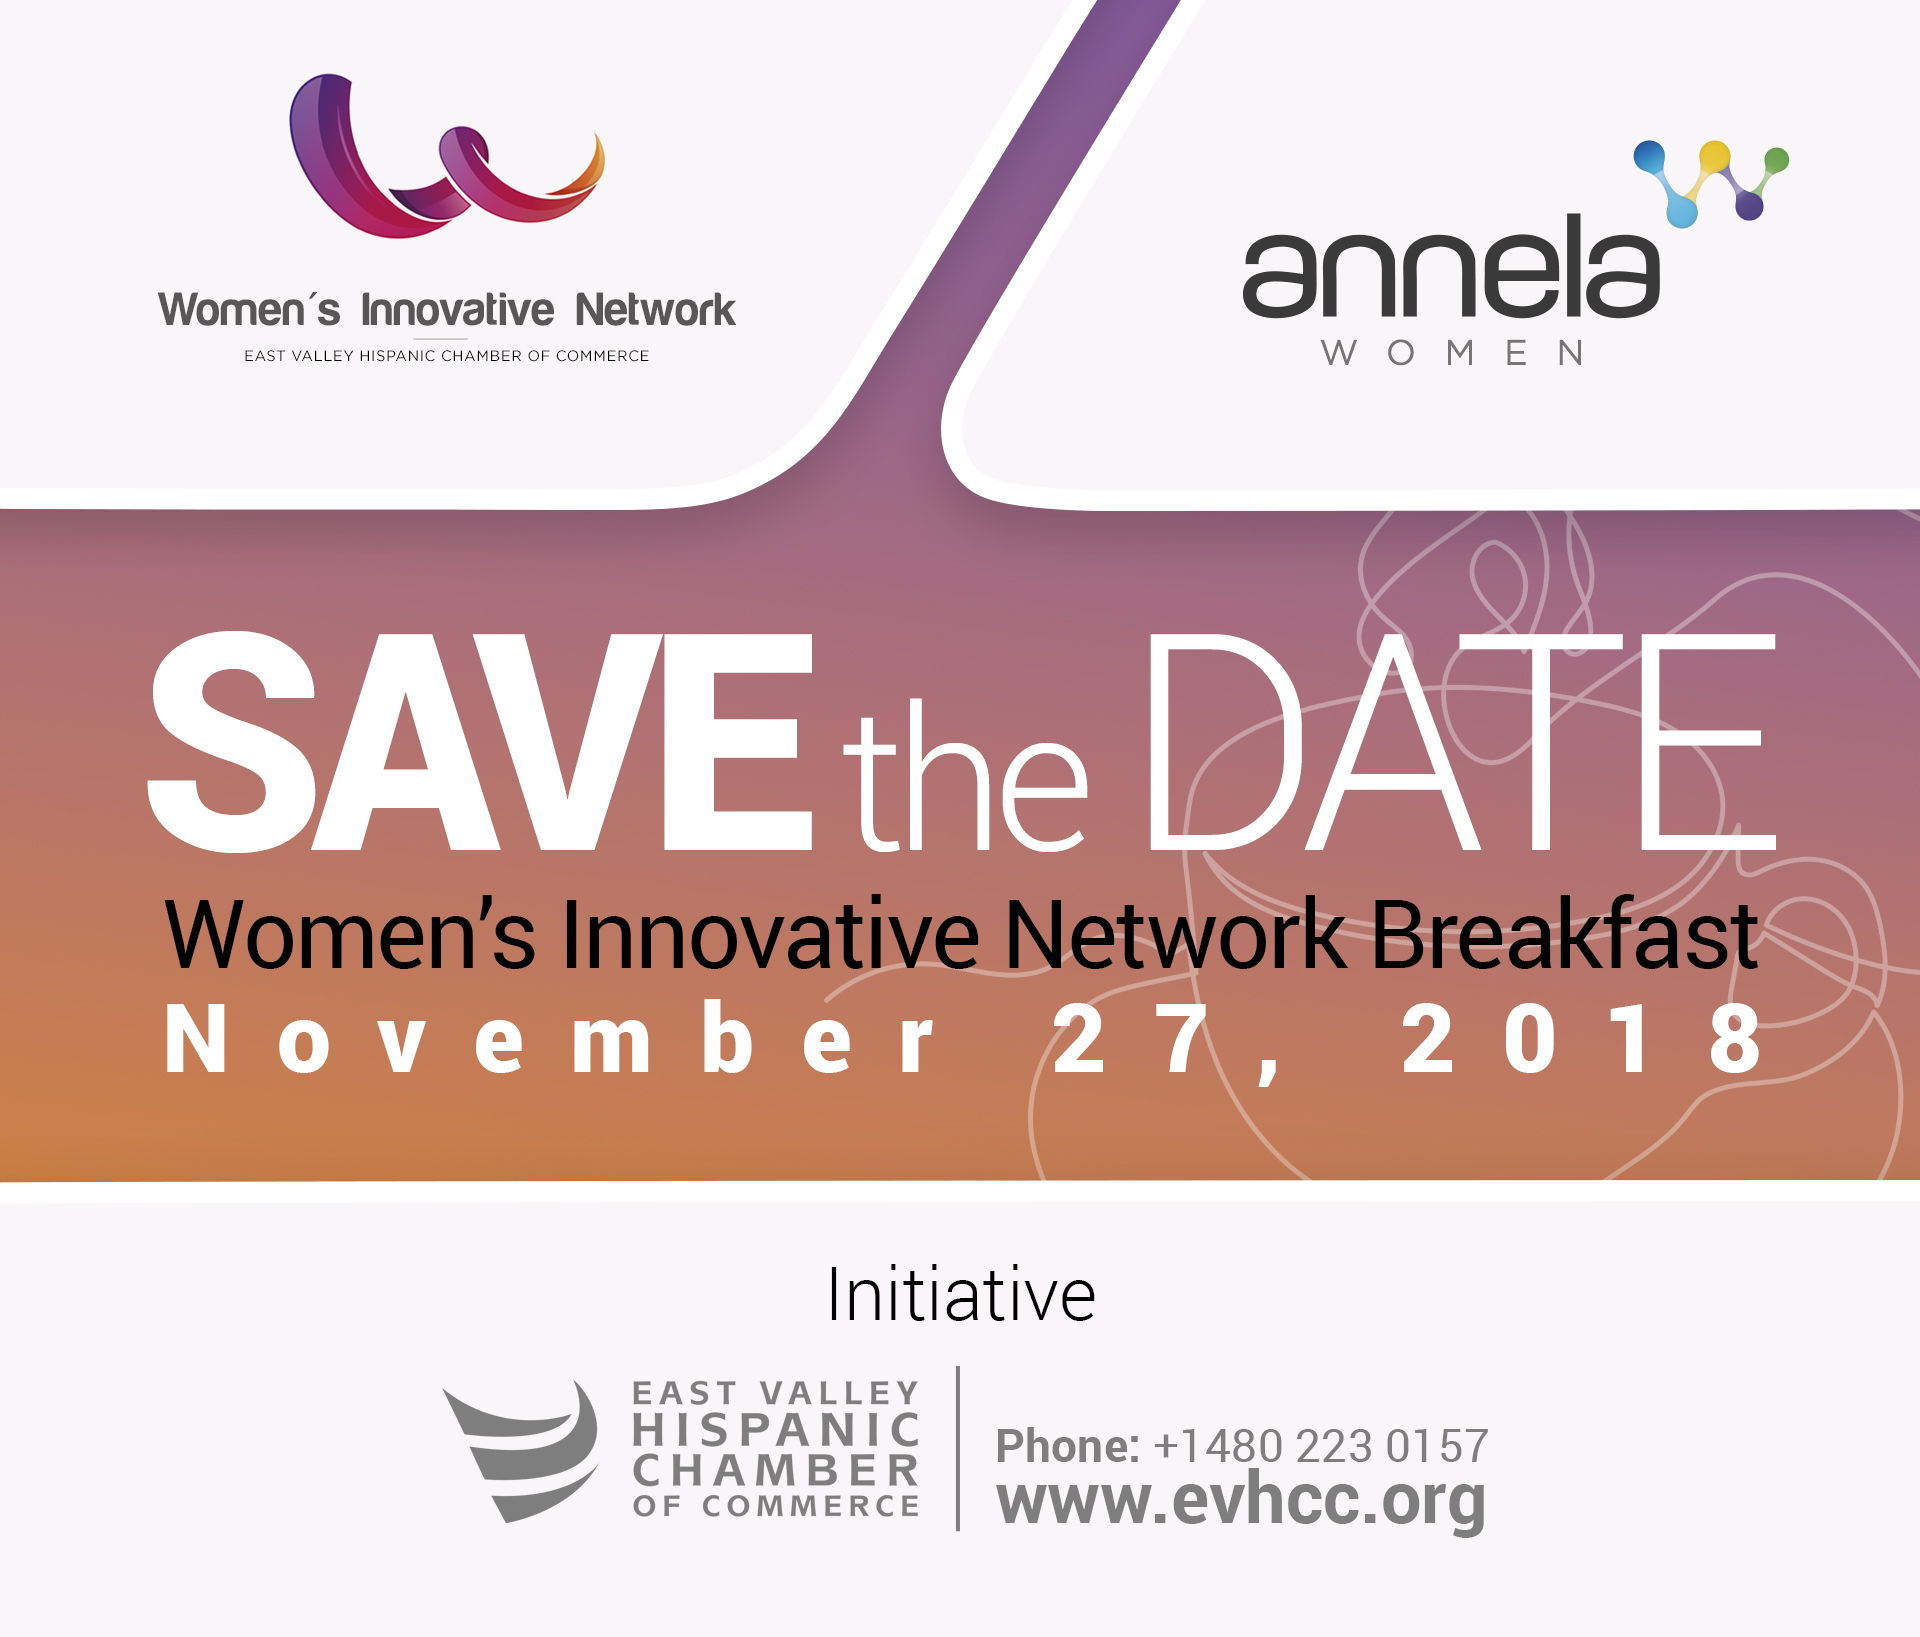 Women's Innovative Network Breakfast Event November 27, 2018